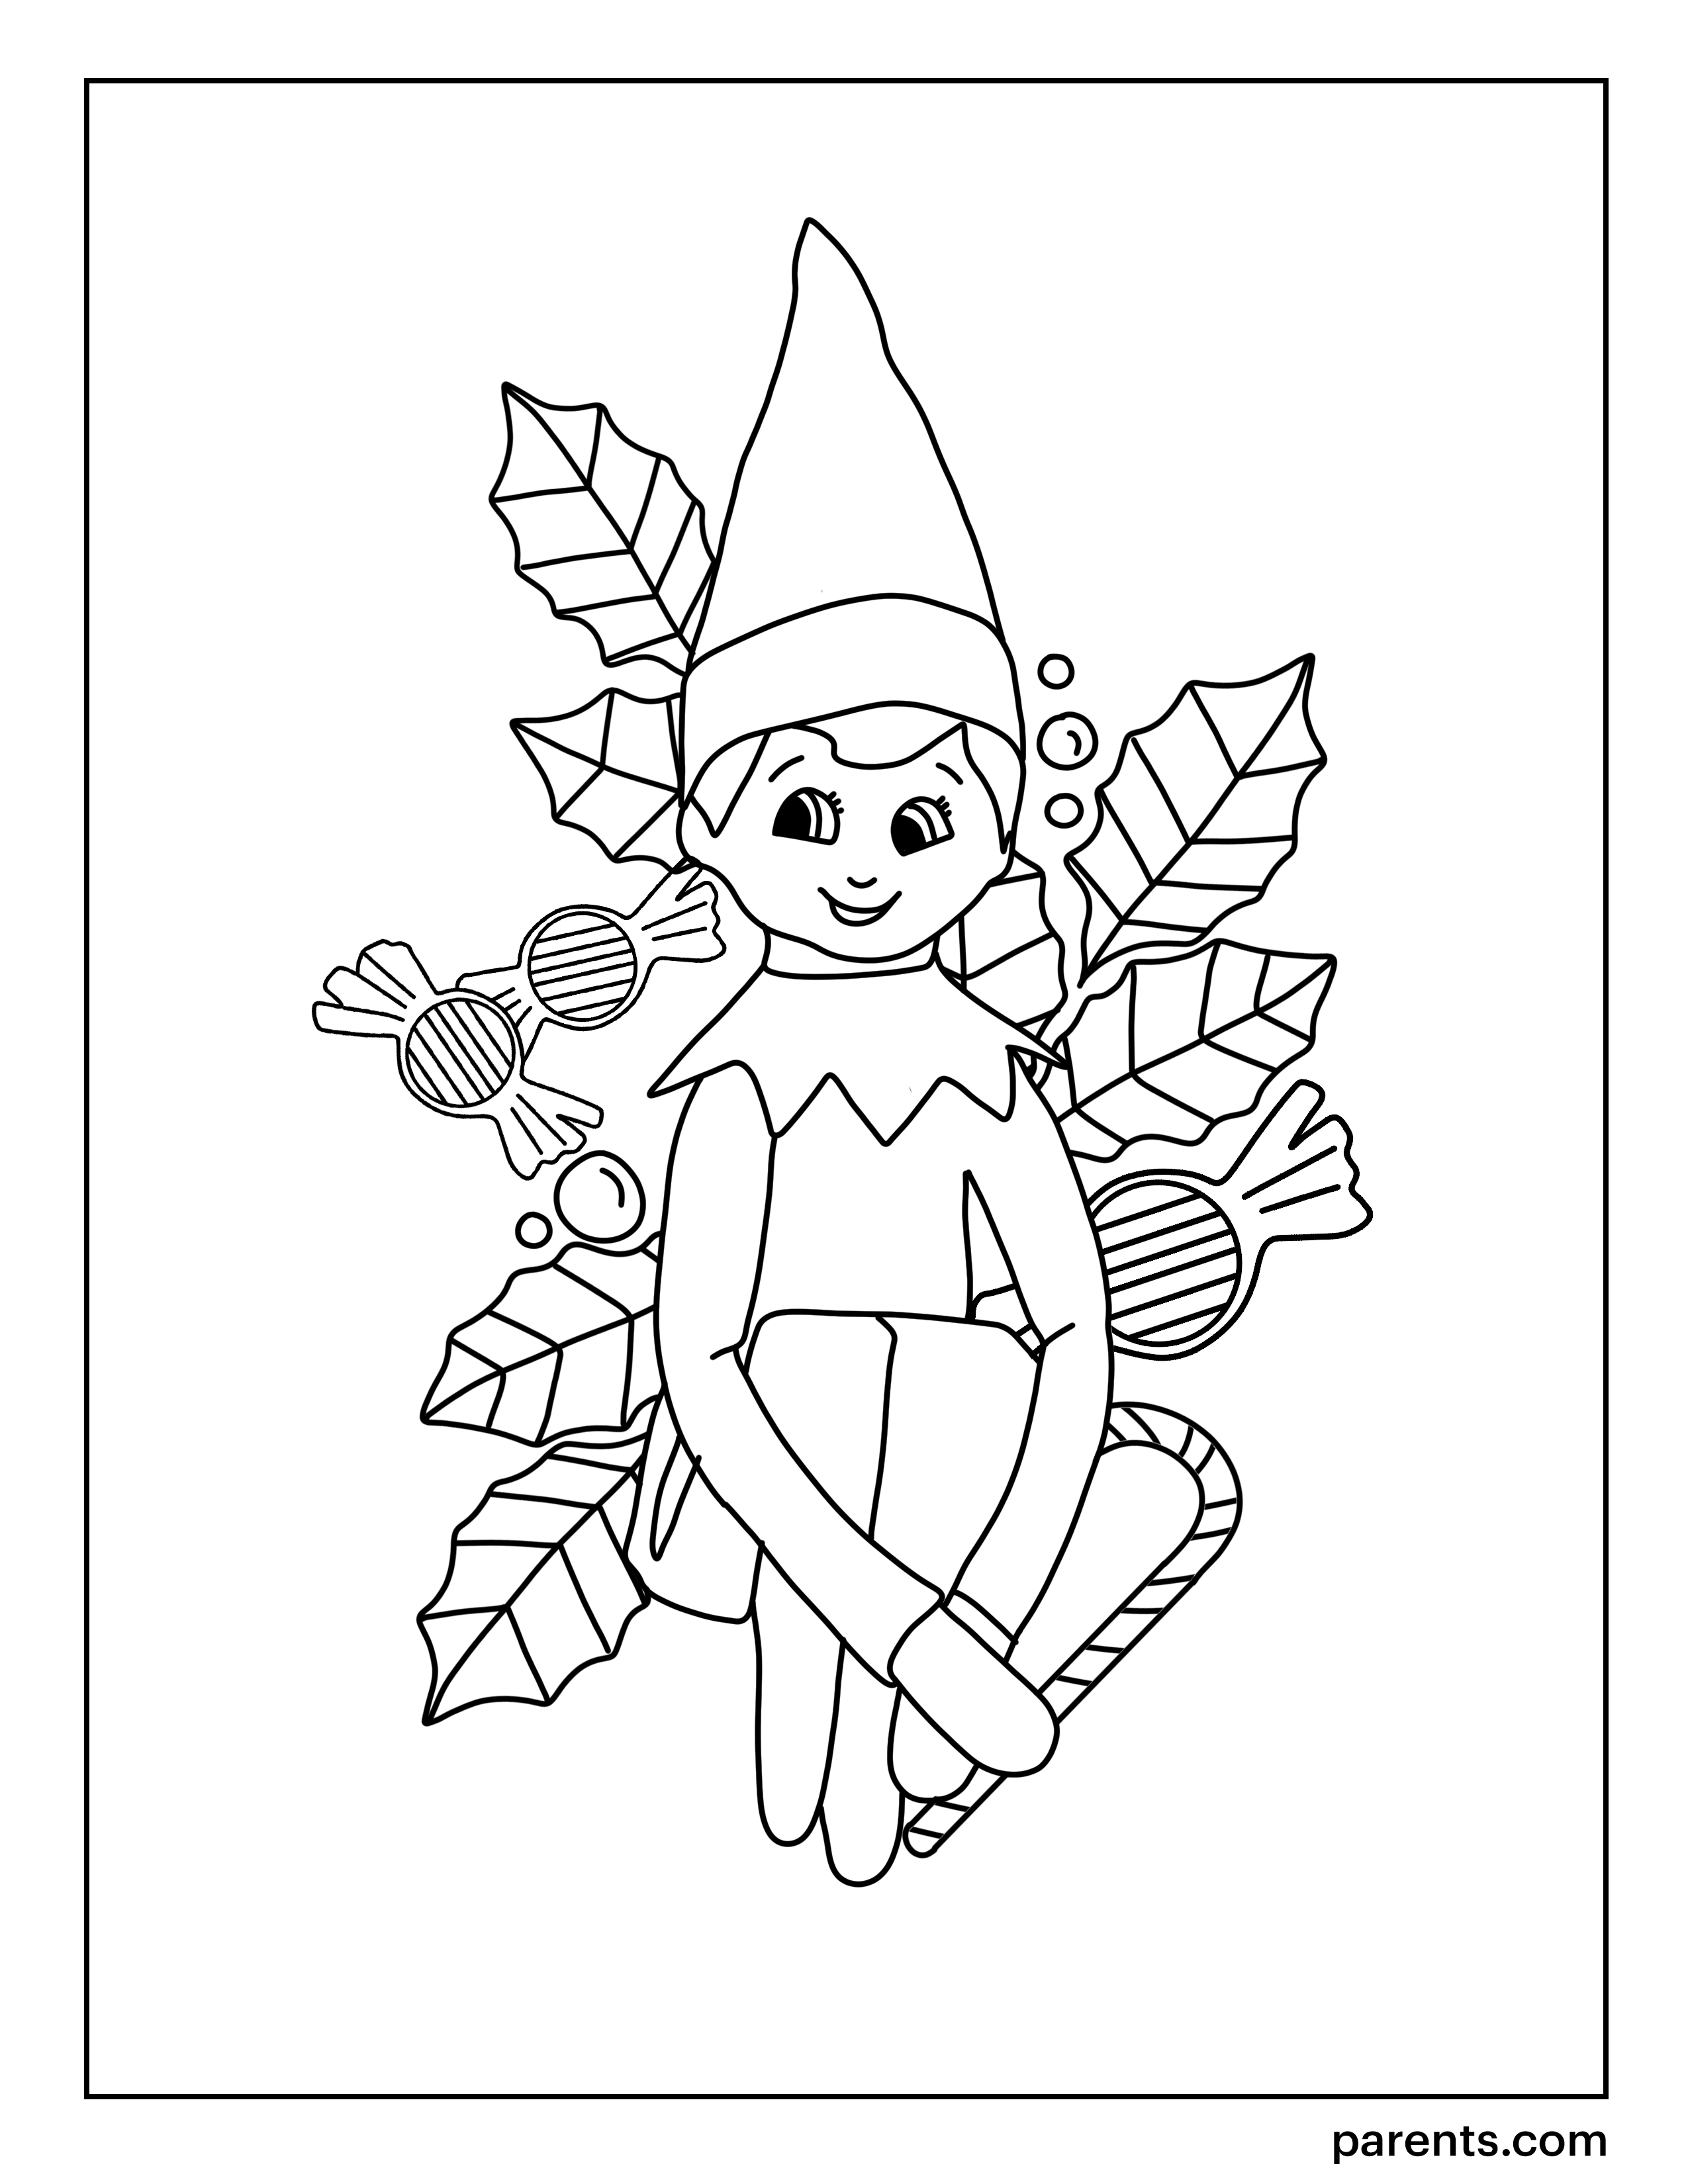 elf coloring sheet christmas coloring book pictures to color elf sheet coloring